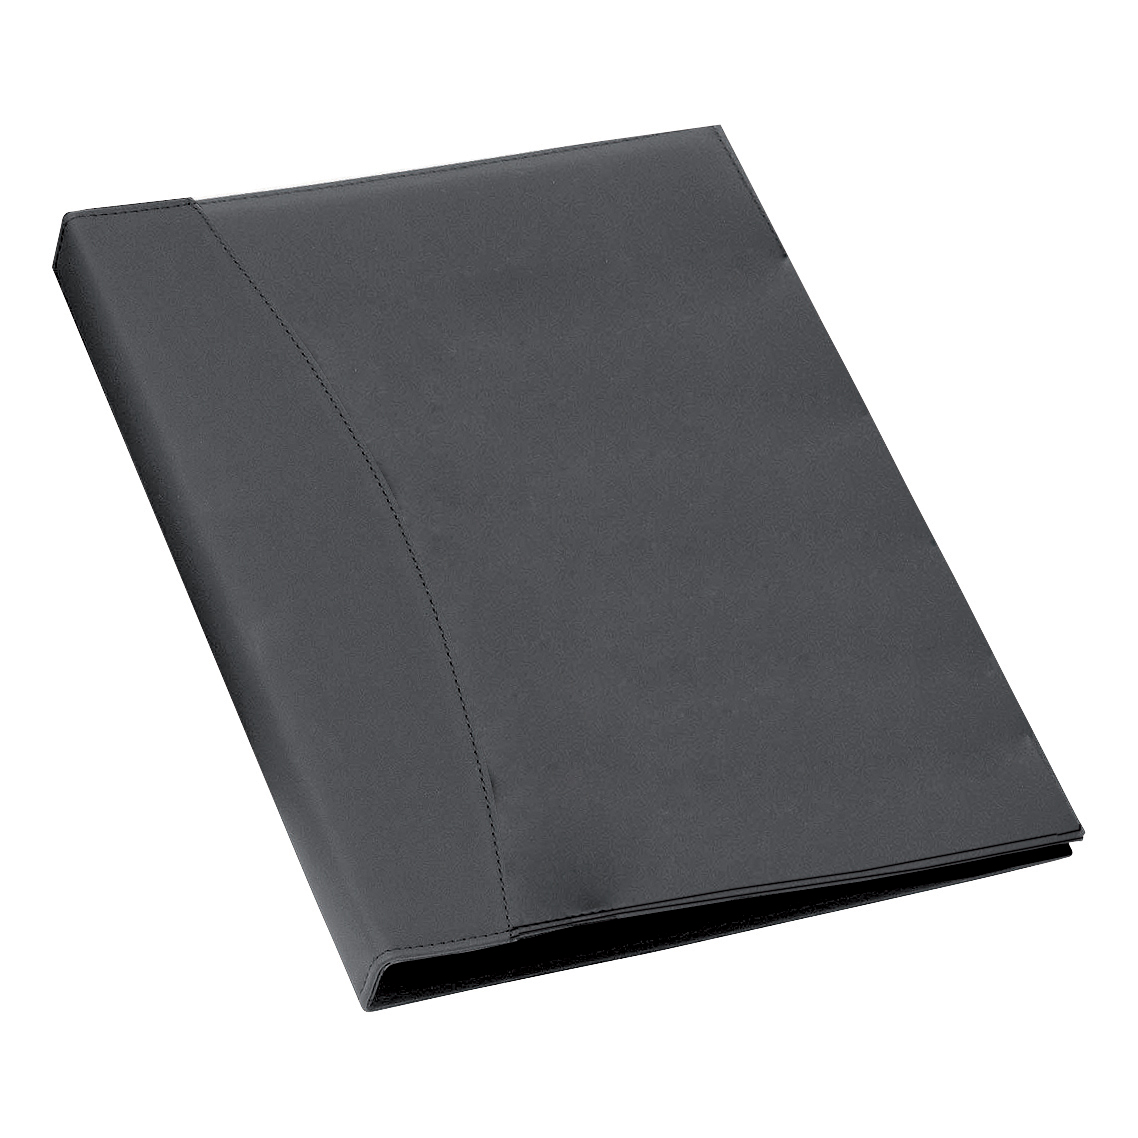 Display Books Rexel Display Book Soft Touch 24 Pockets A4 Smooth Black Ref 2101185